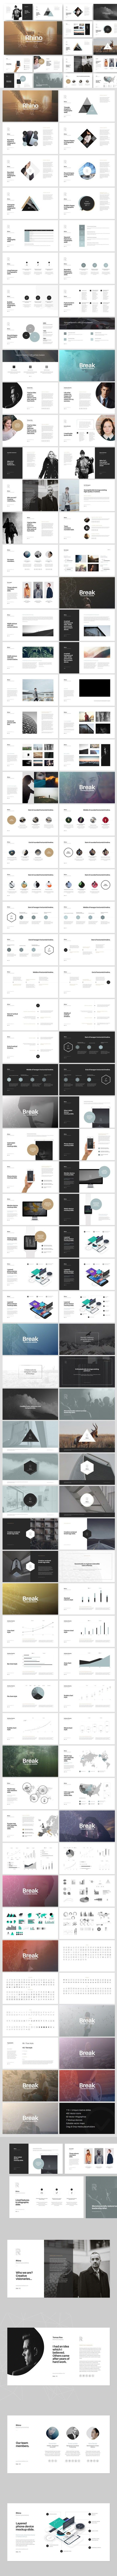 Rhino Keynote Presentation Template. Business Infographic. $20.00